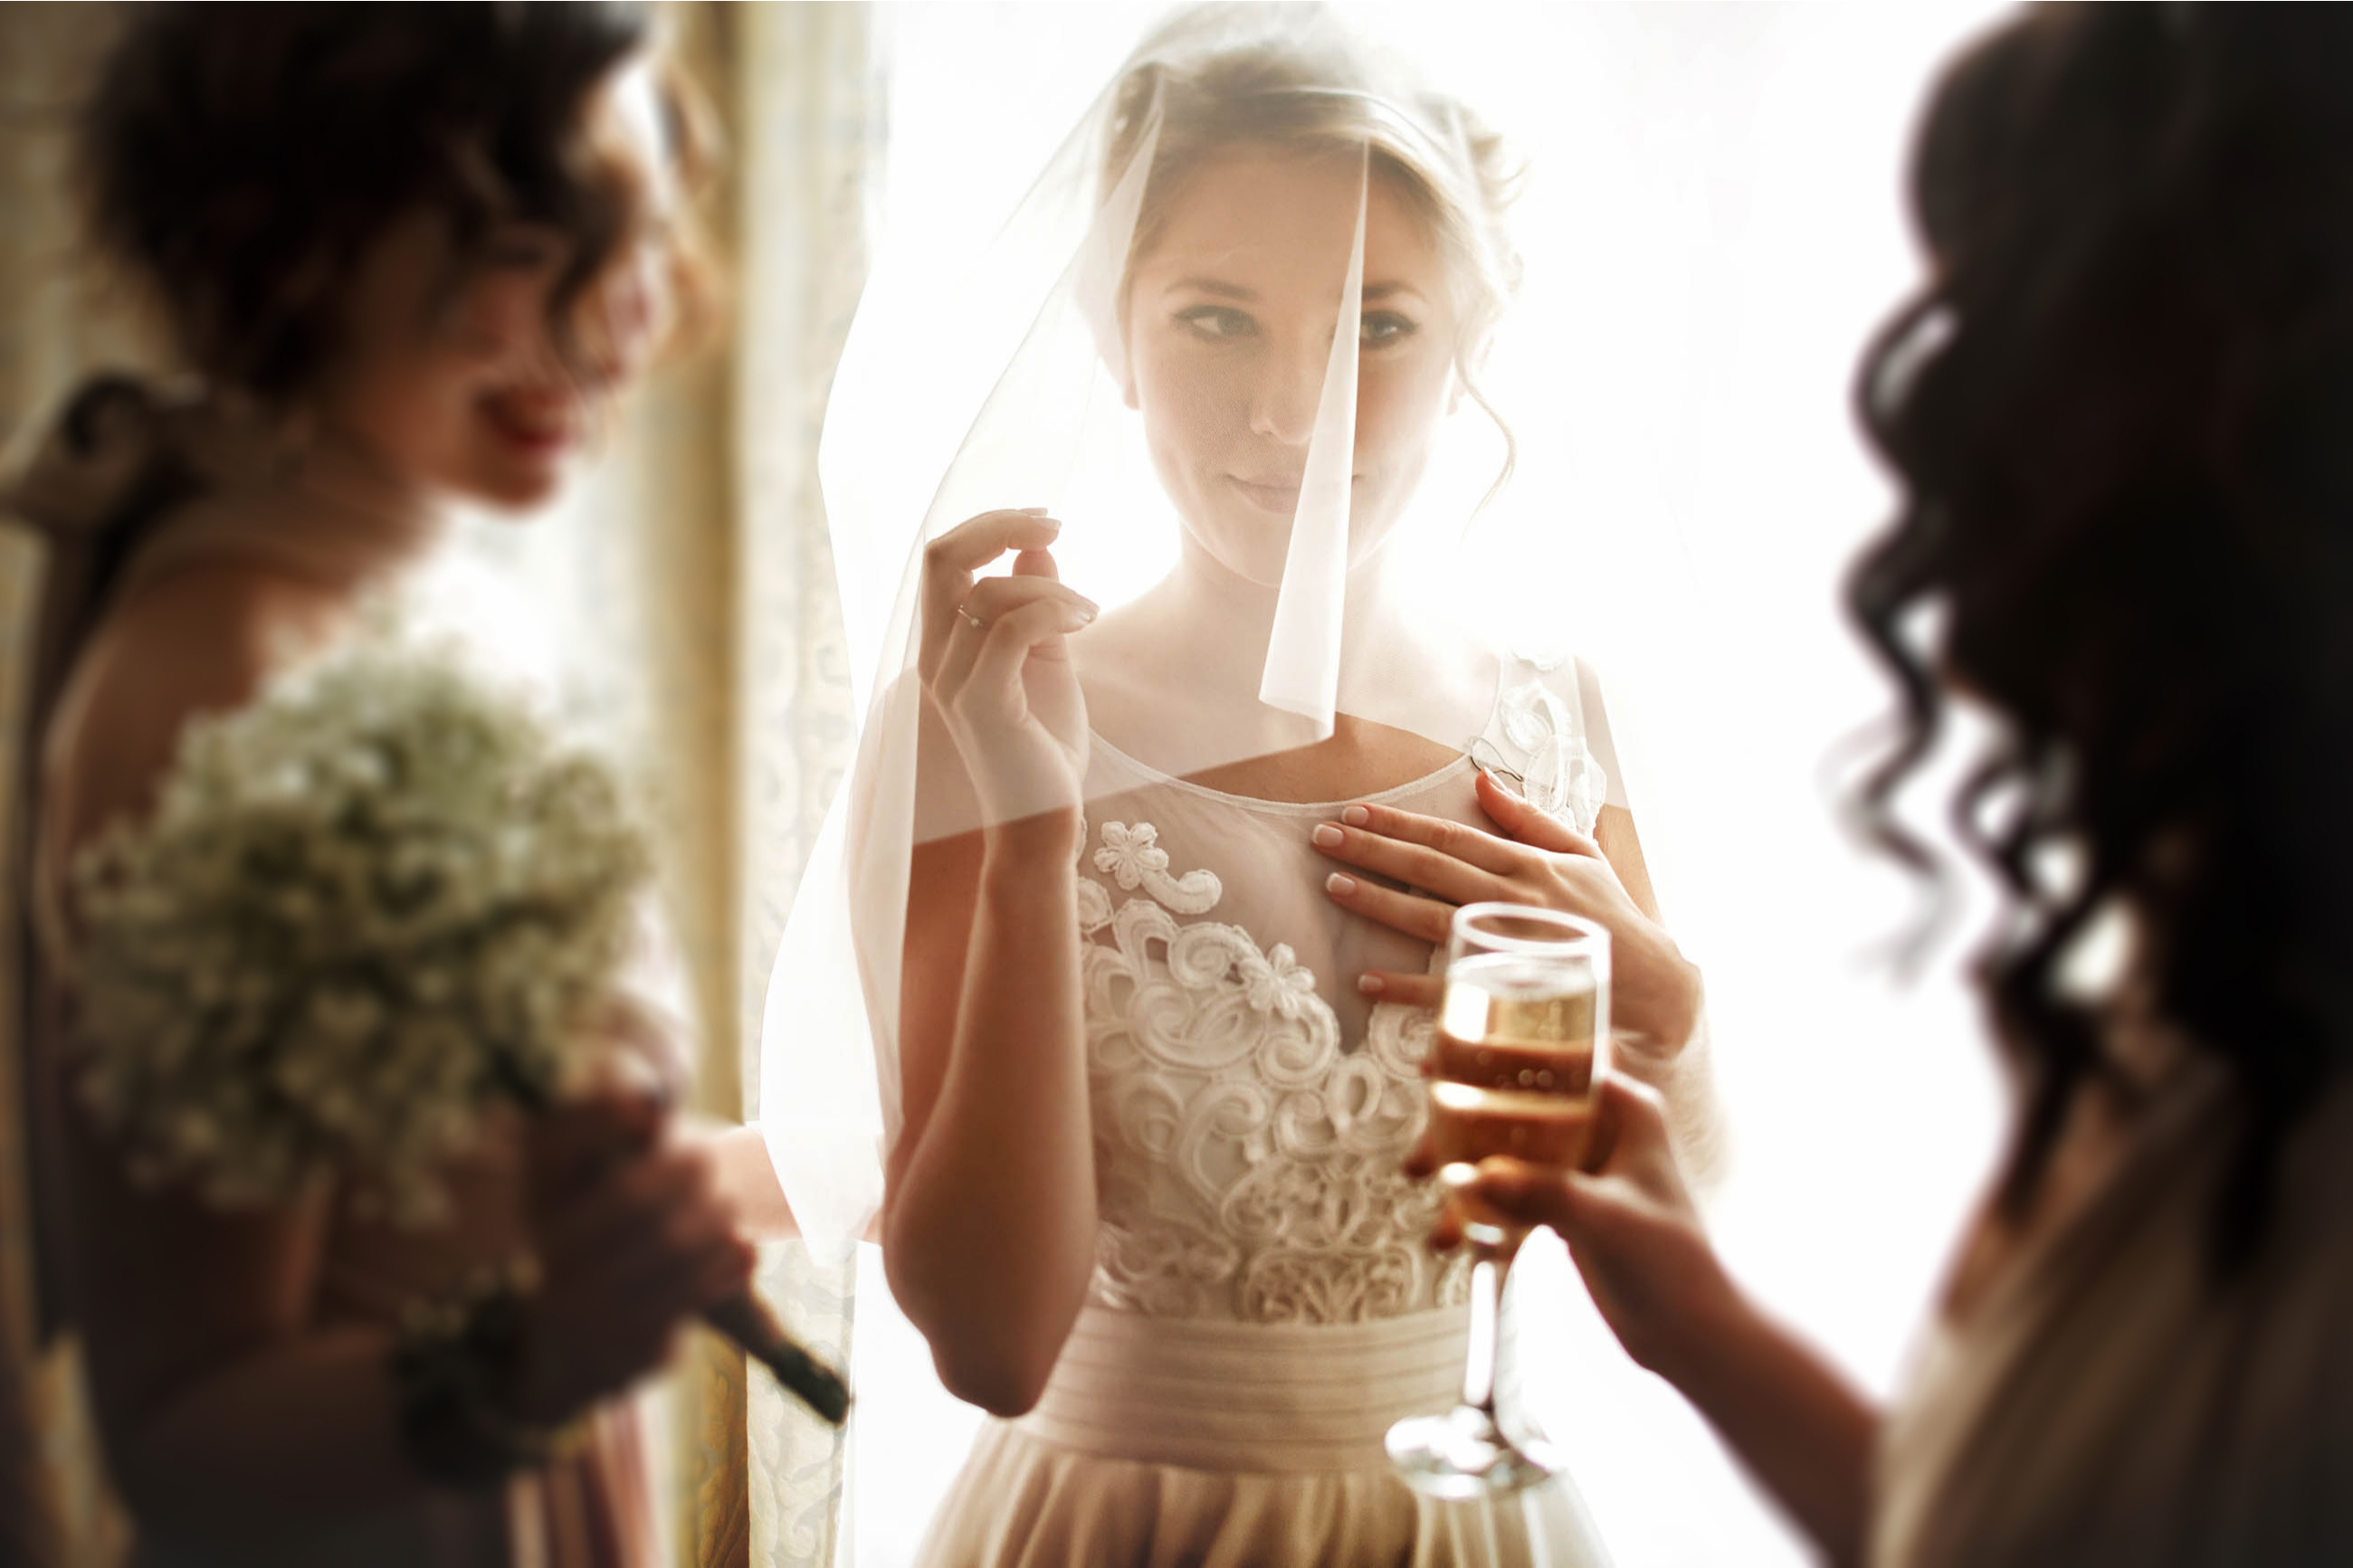 Picking the perfect veil for your wedding can be overwhelming. My guide to veil lengths will help you decide which is right for you. Having a veil that covers your face is very traditional.